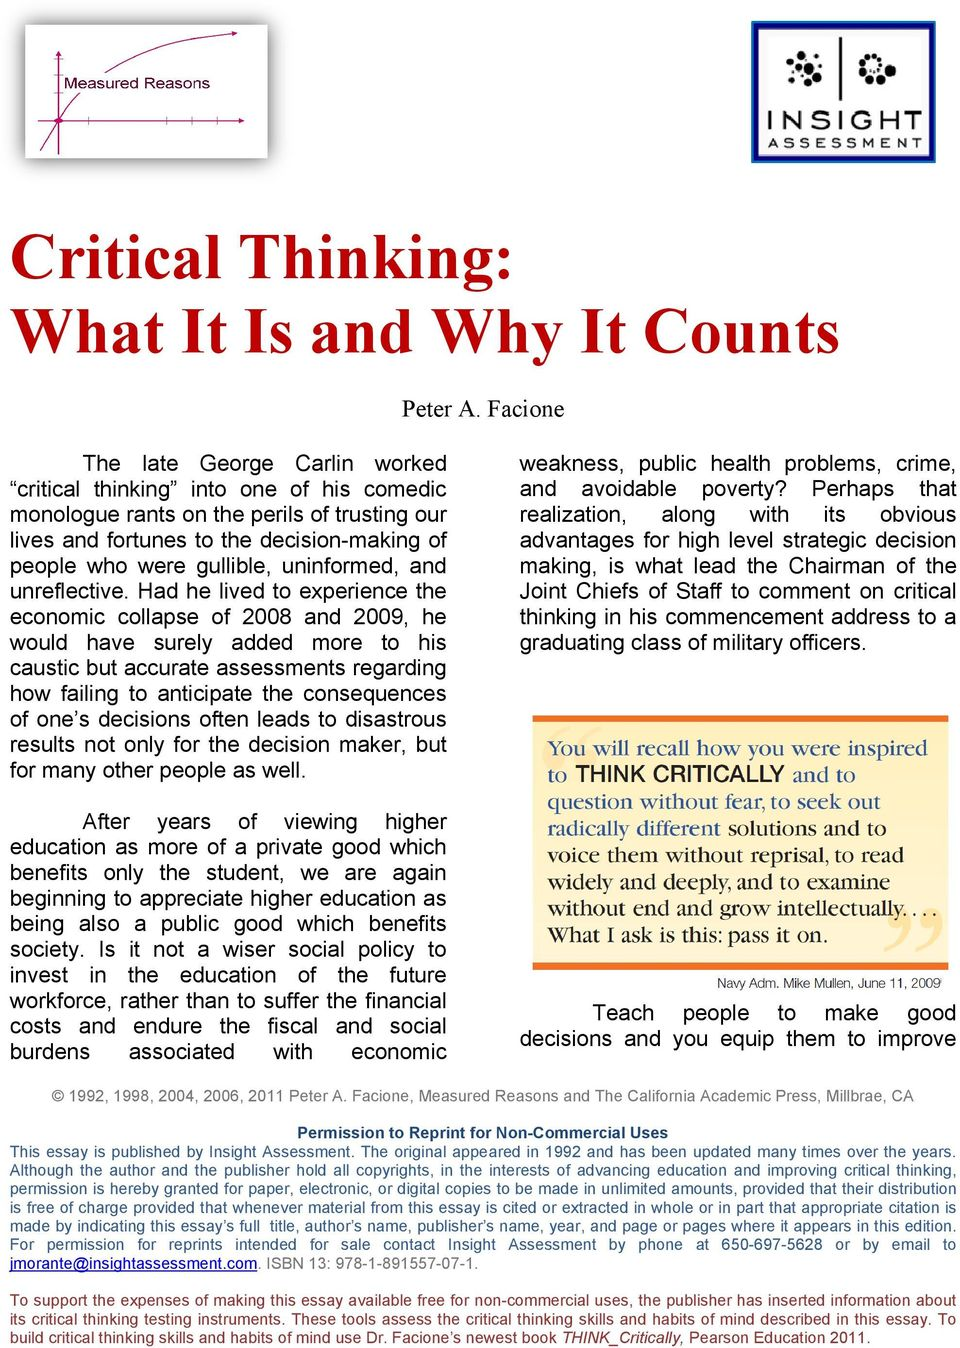 peter facione critical thinking what is it & why it counts 2010